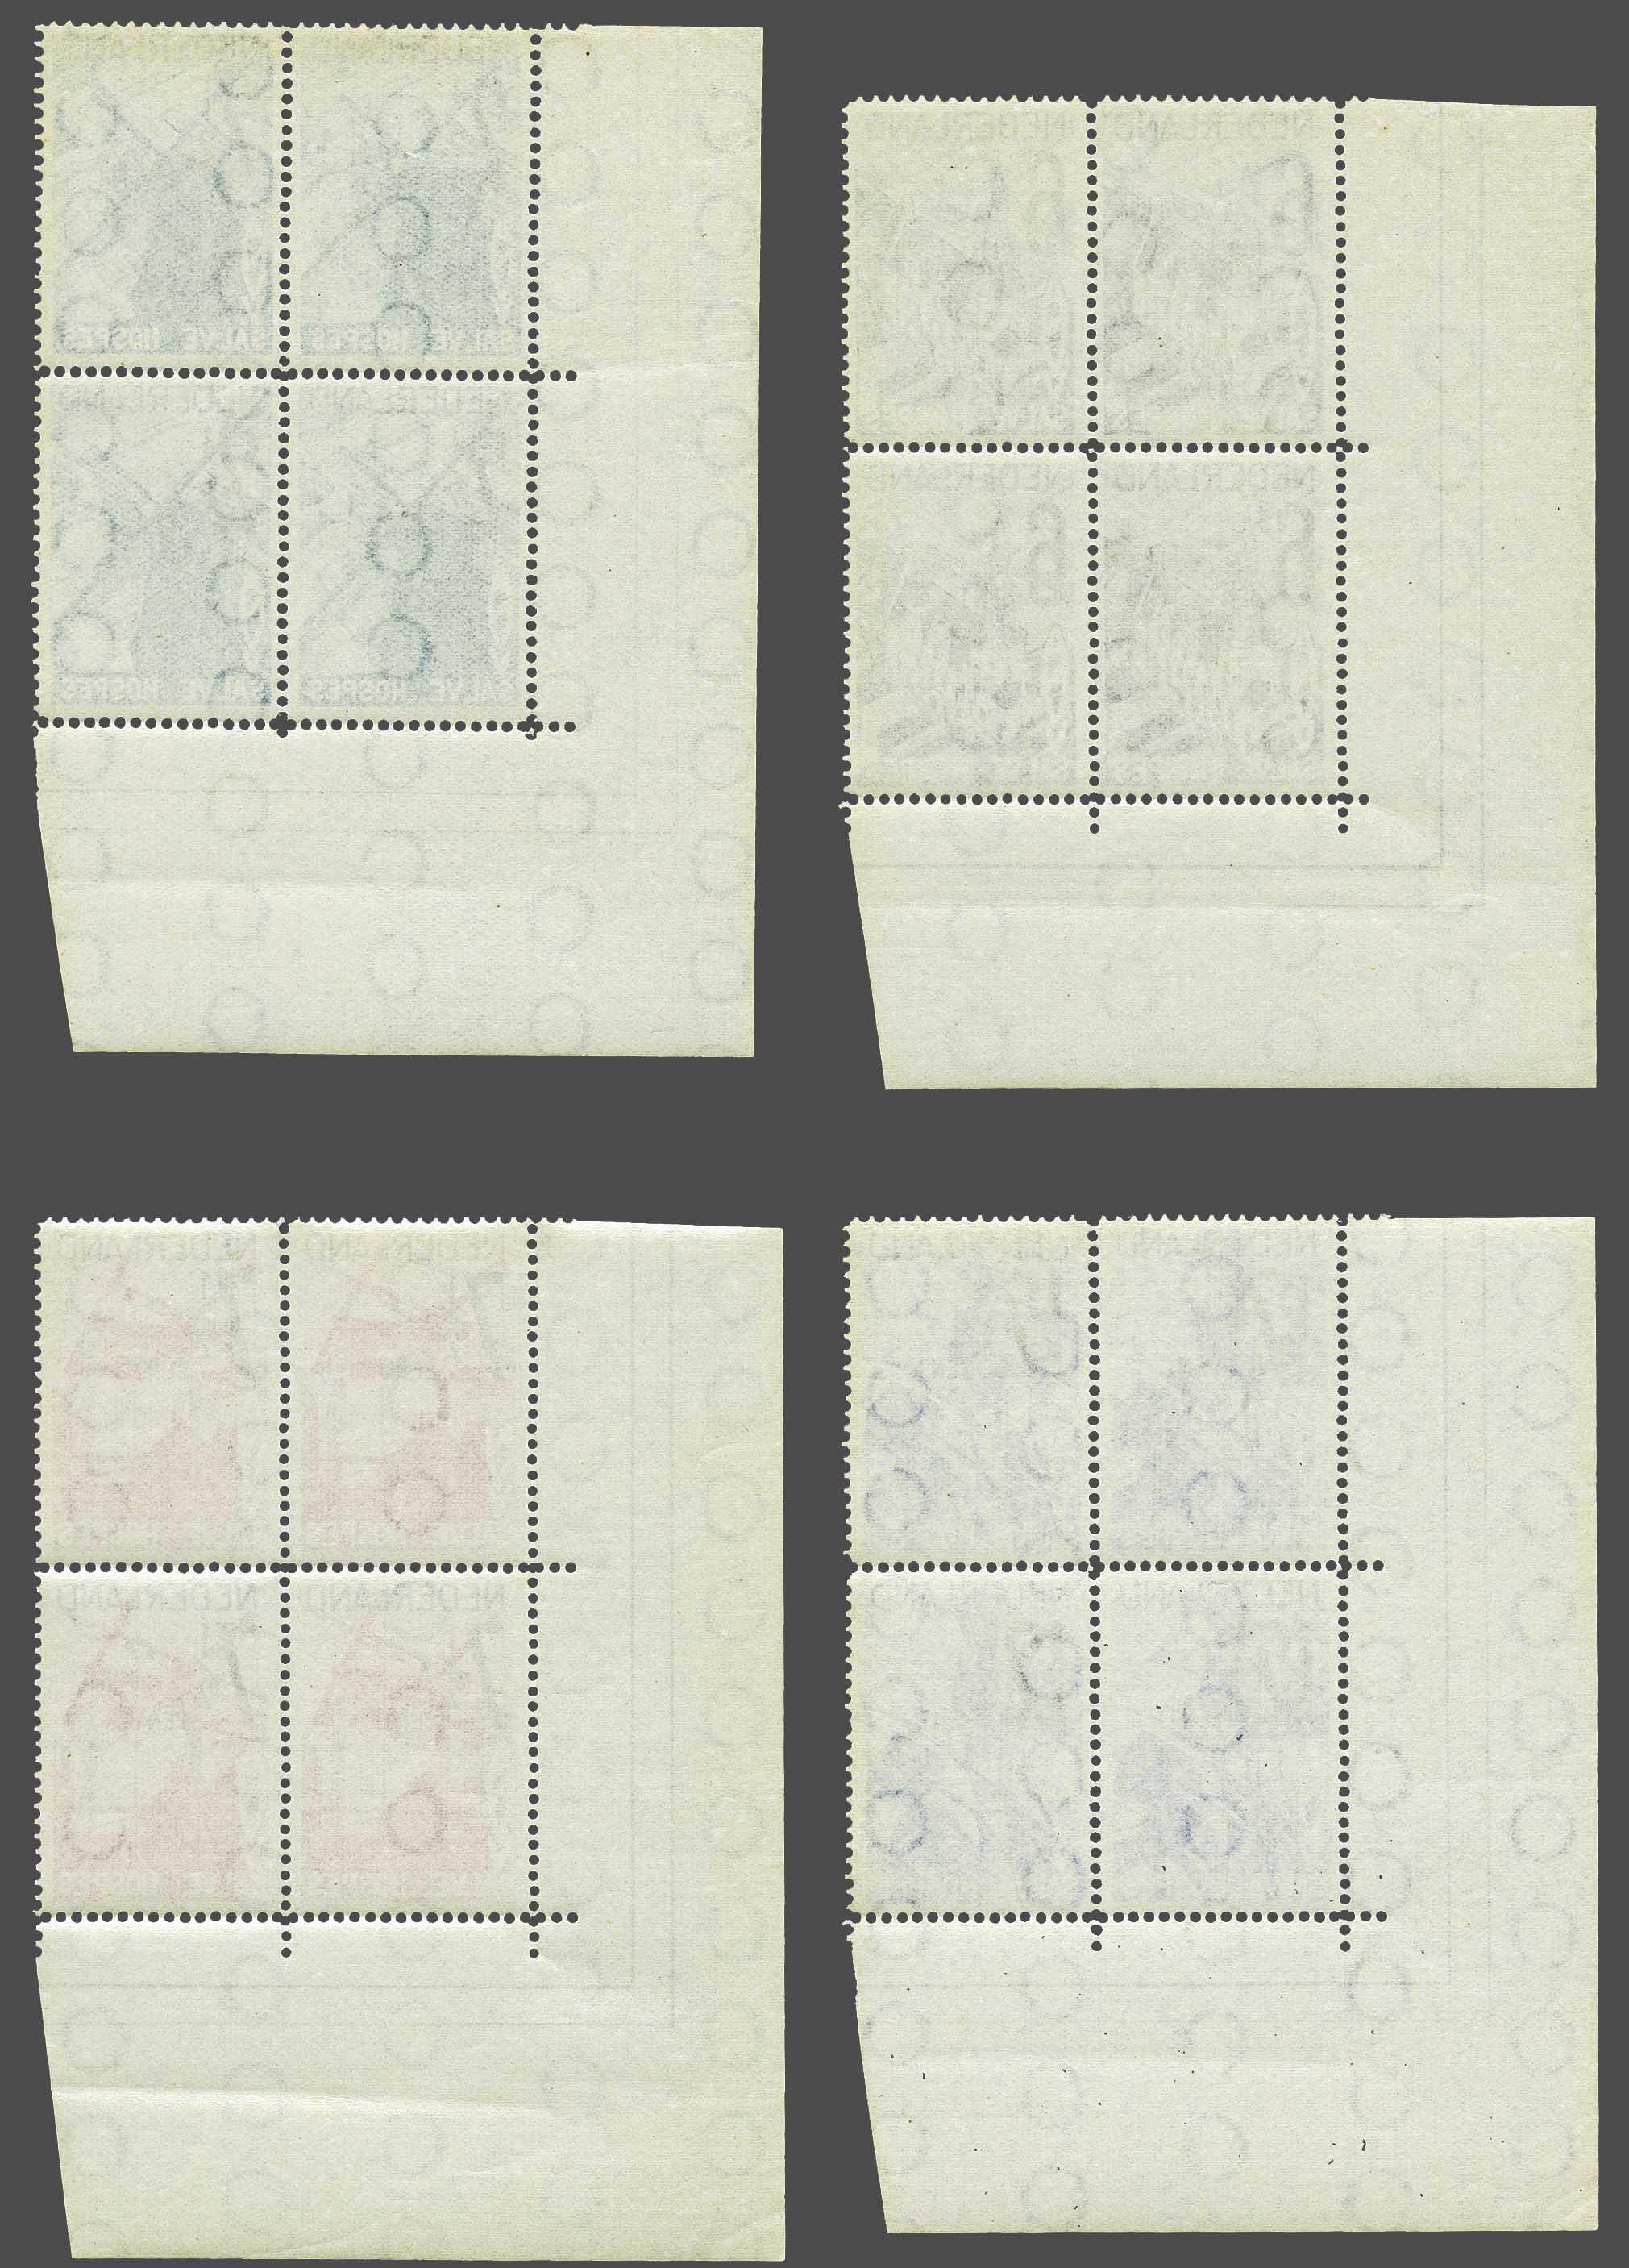 Lot 3585 - Netherlands and former colonies Netherlands -  Corinphila Veilingen Auction 244 -Netherlands and former colonies, WW2 Postal History, Bosnia, German and British colonies, Egypt. - Day 3